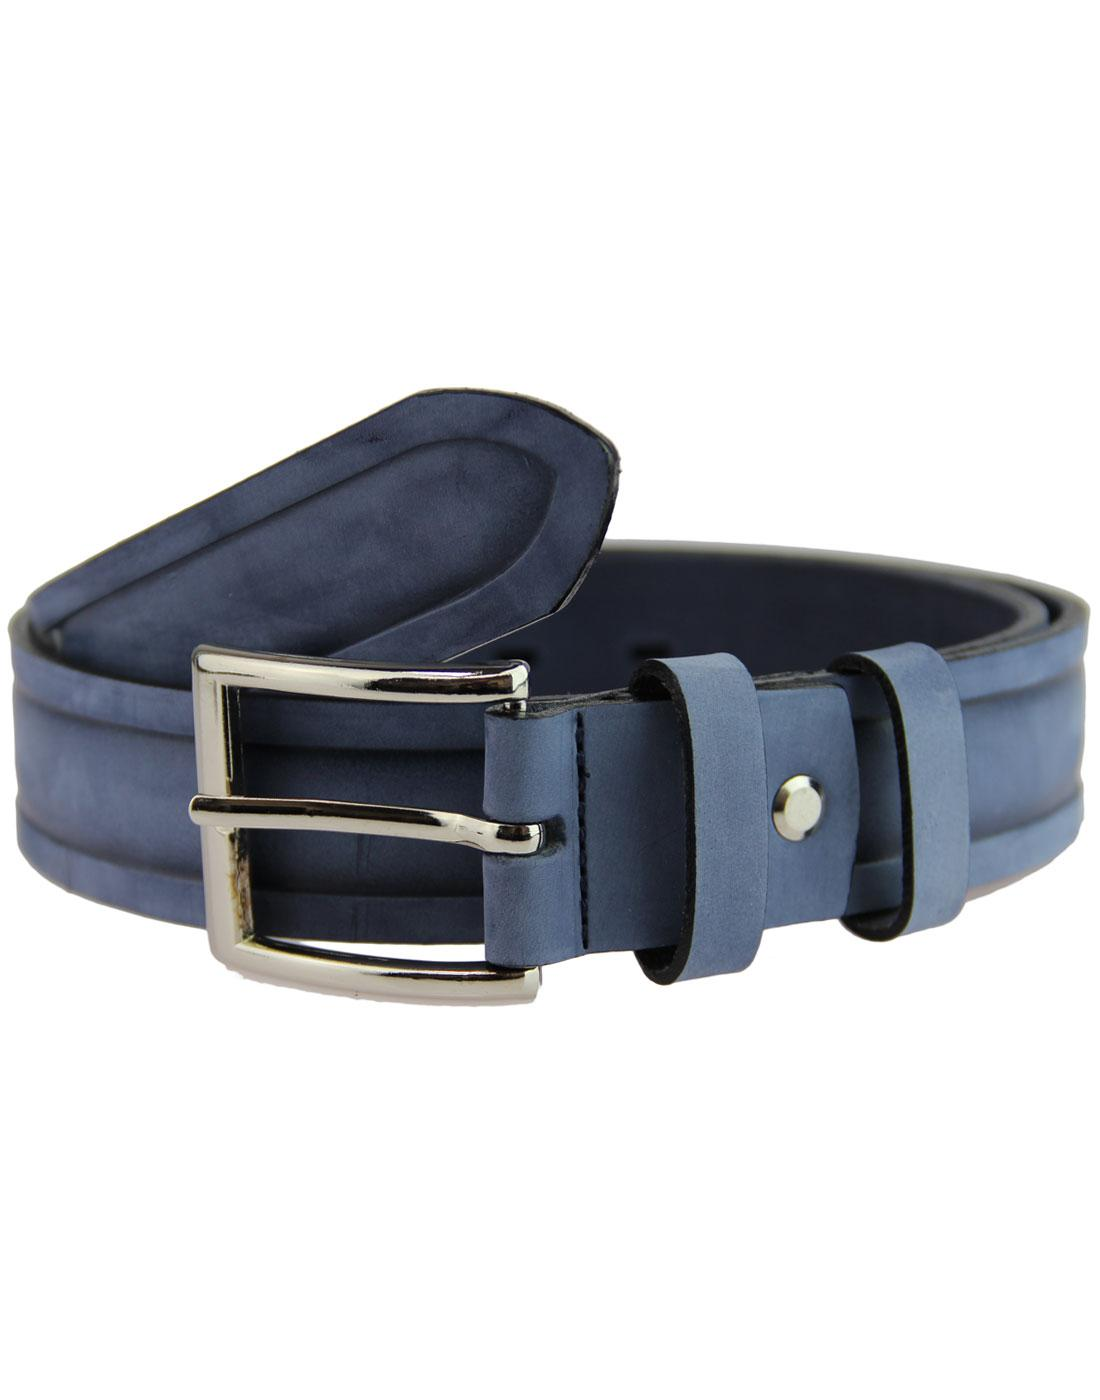 LACUZZO Retro Nubuck Distressed Ridge Belt NAVY